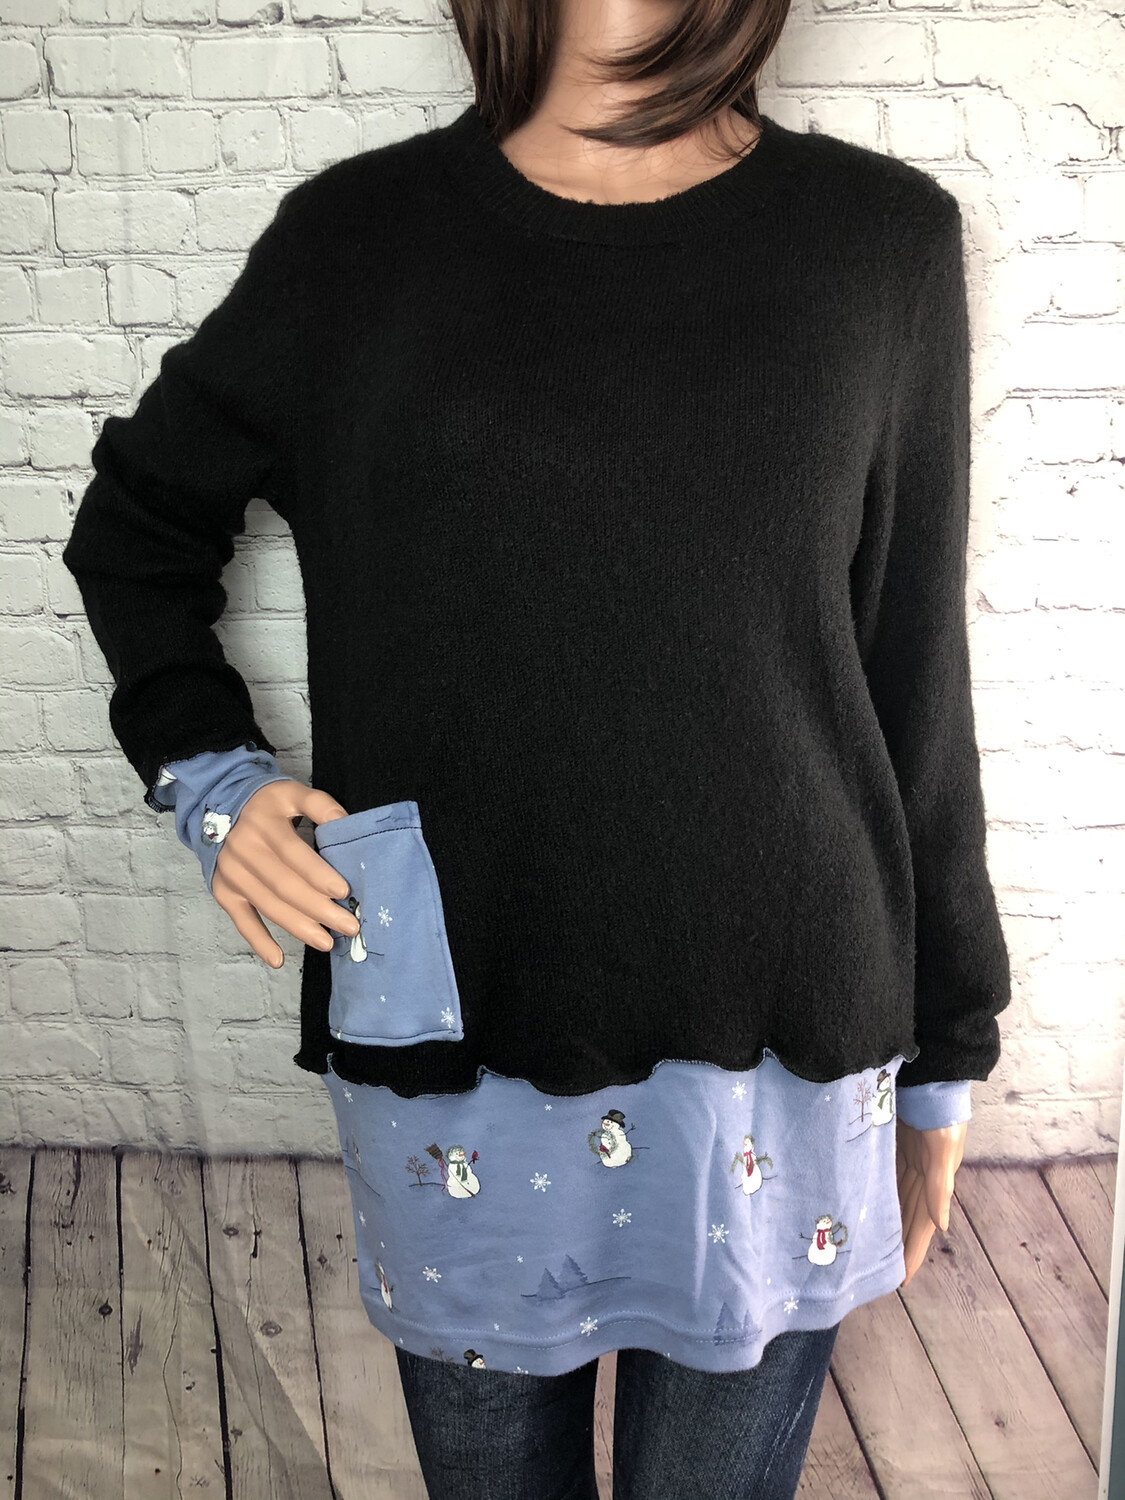 S Threads Boutique Upcycled Black Sweater with Pocket Snowman Eco Fashion Sustainable Materials Holiday Size Large